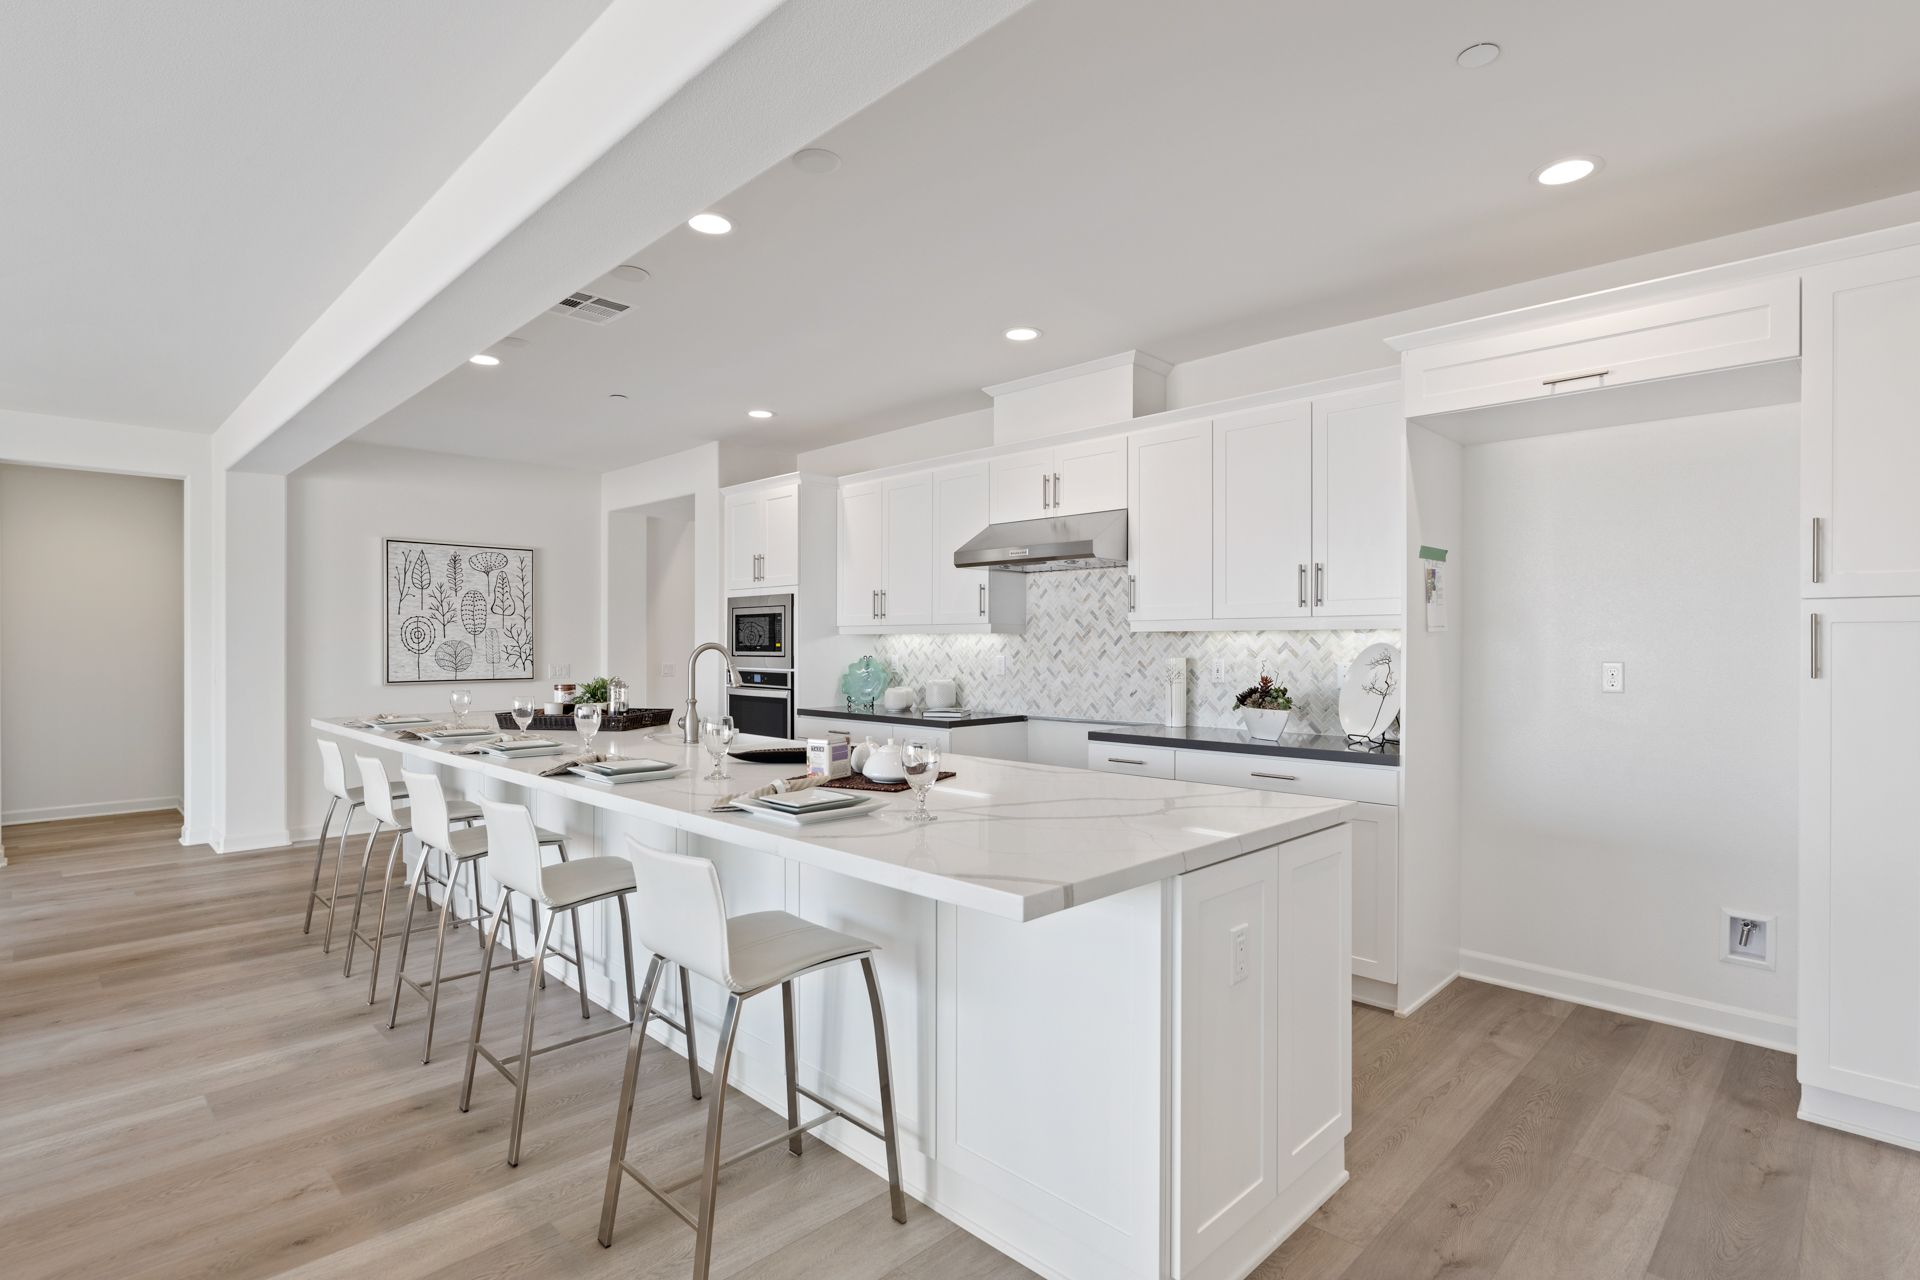 Kitchen featured in the Plan 1 By Brandywine Homes in Los Angeles, CA